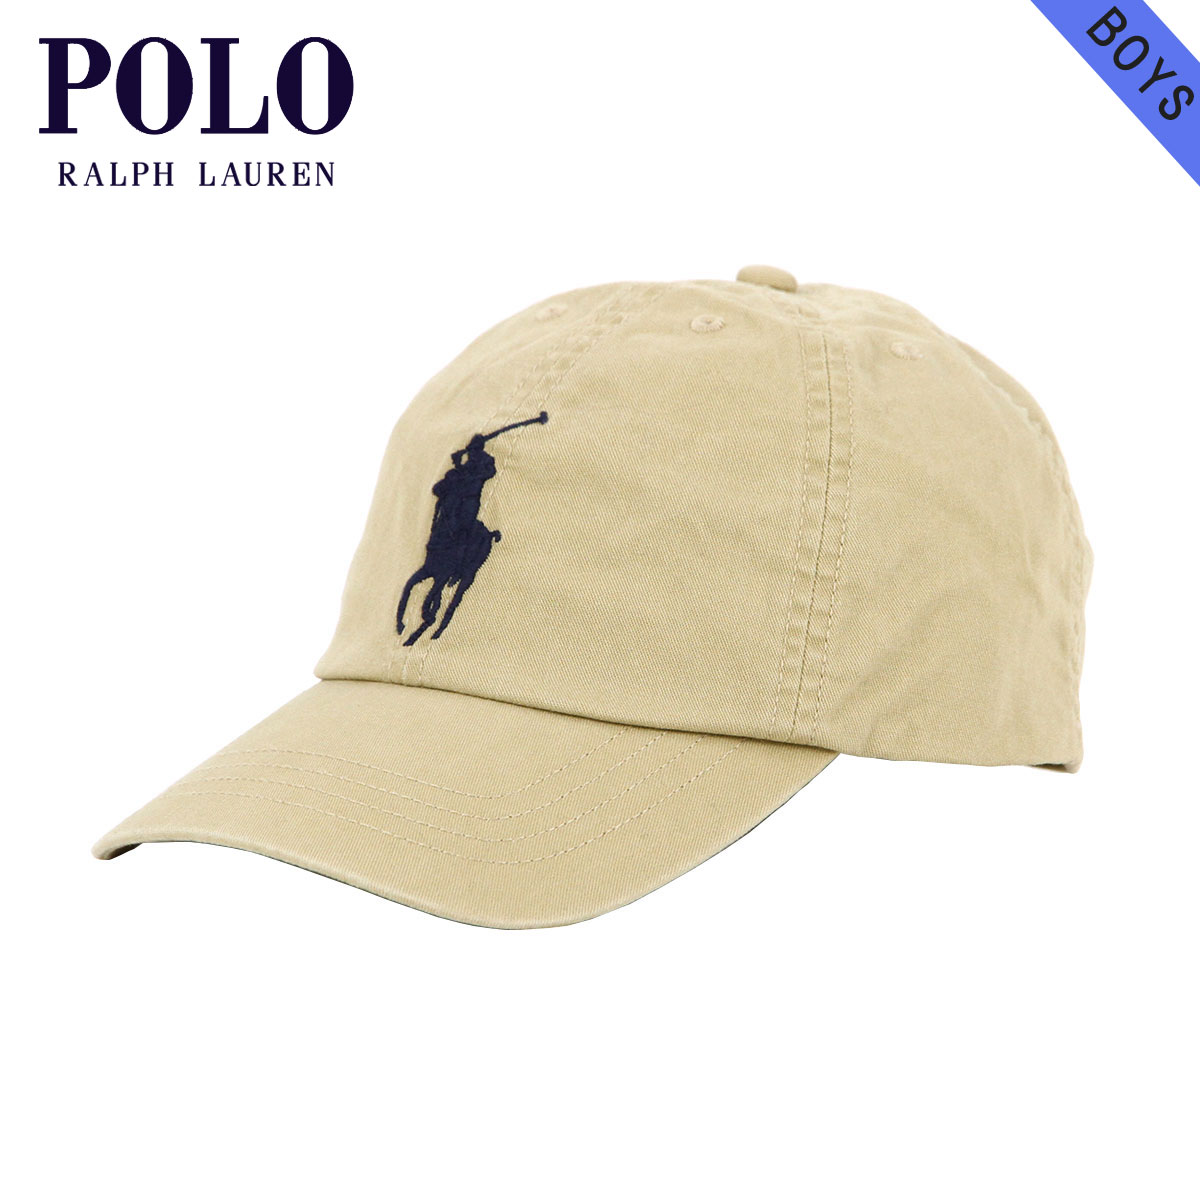 c40ba0c6 Polo Ralph Lauren kids POLO RALPH LAUREN CHILDREN regular article children's  clothes Boys hat cap Big ...